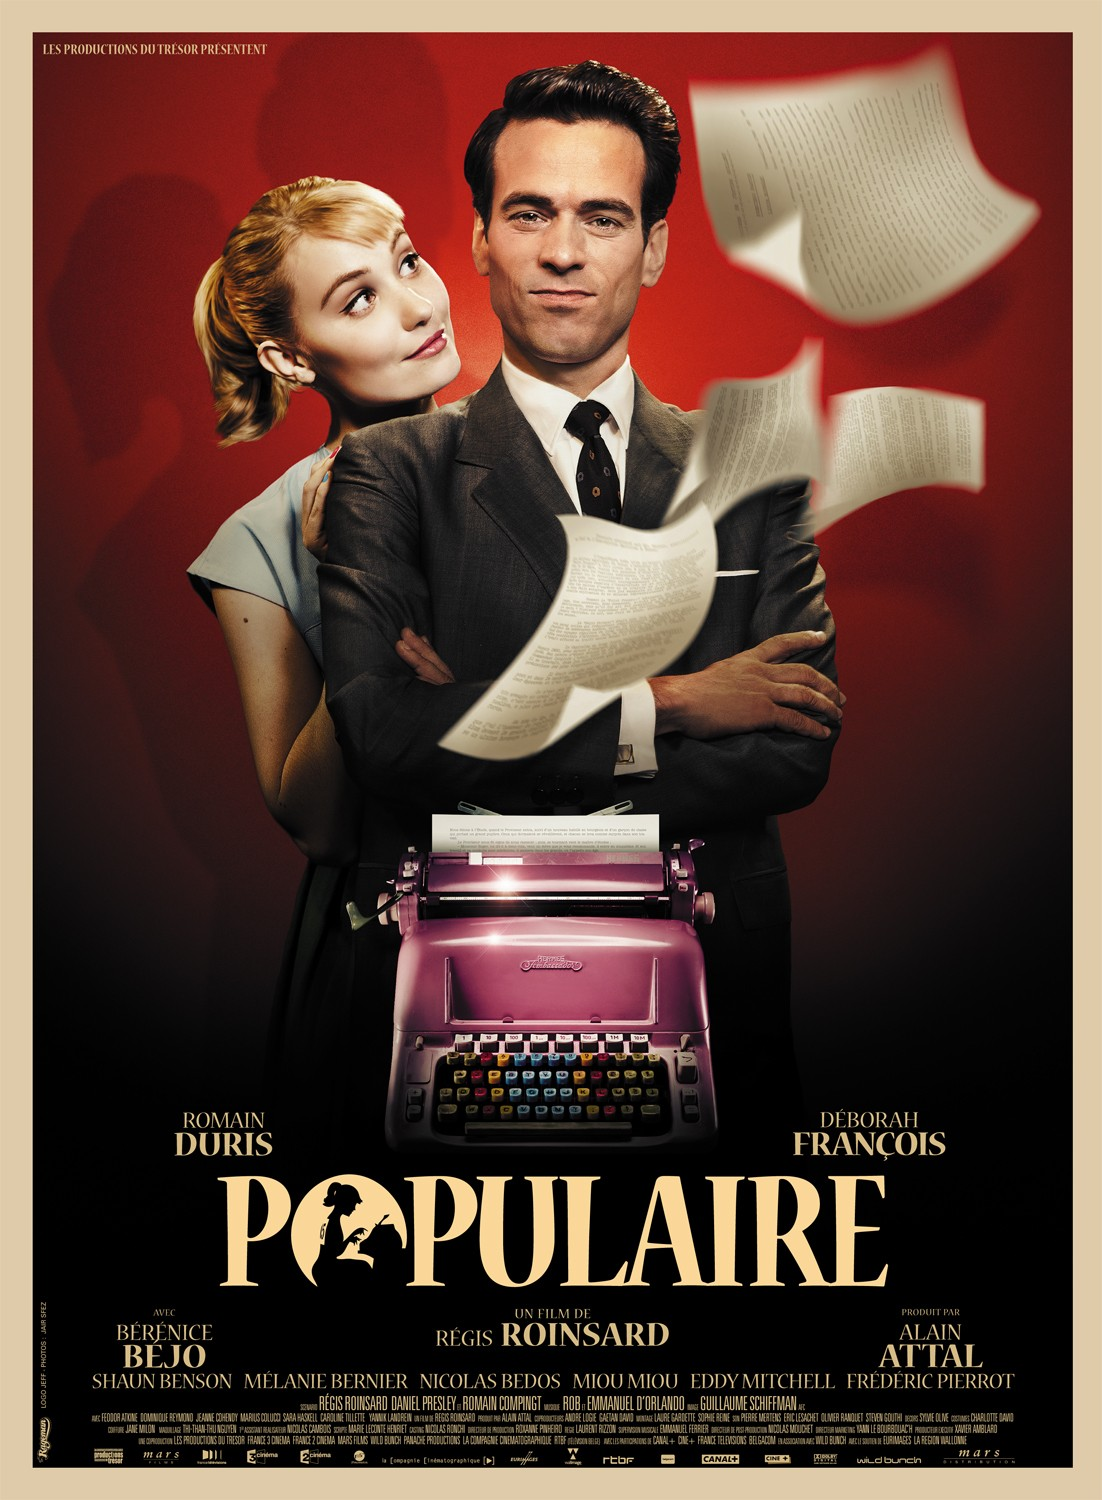 https://clairestbearestreviews.files.wordpress.com/2014/03/populaire-poster.jpg